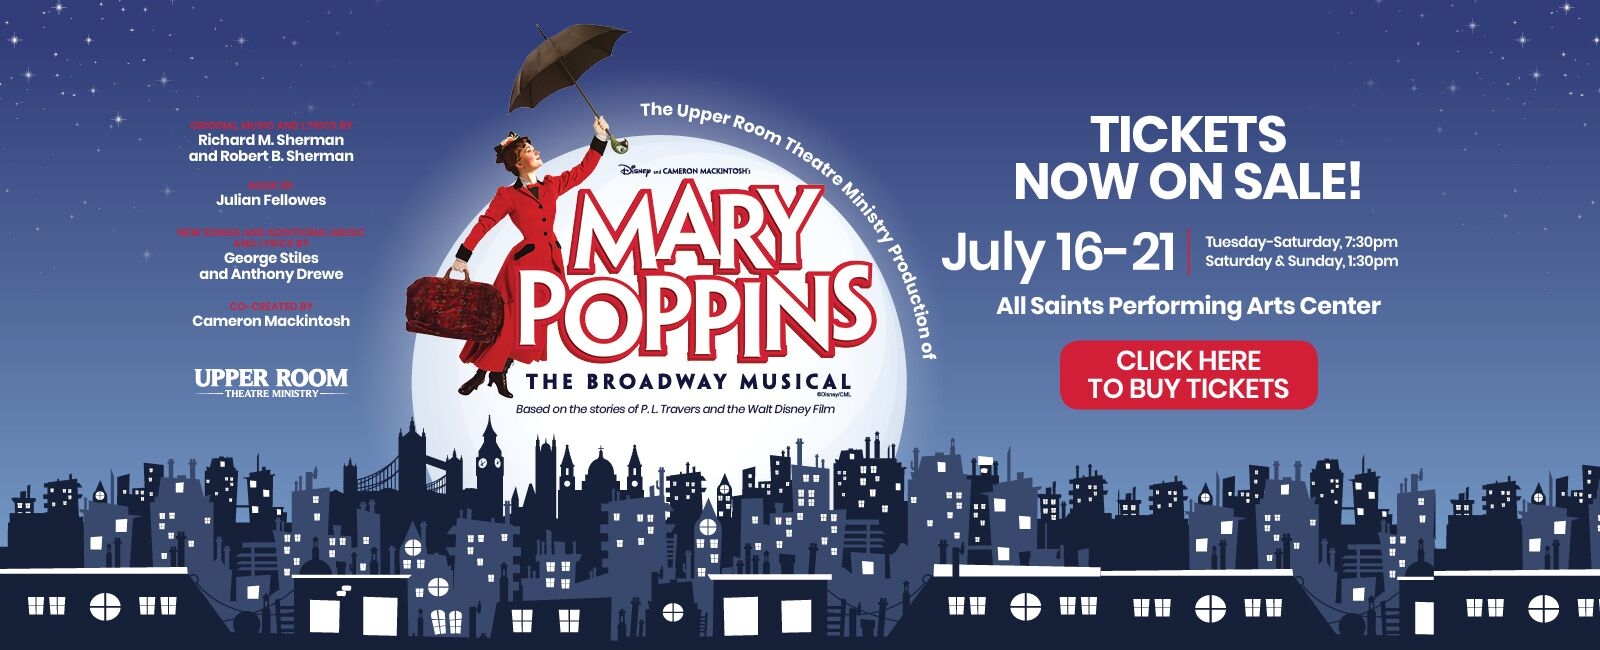 Mary Poppins - July 16-21, 2019 - Upper Room Theatre